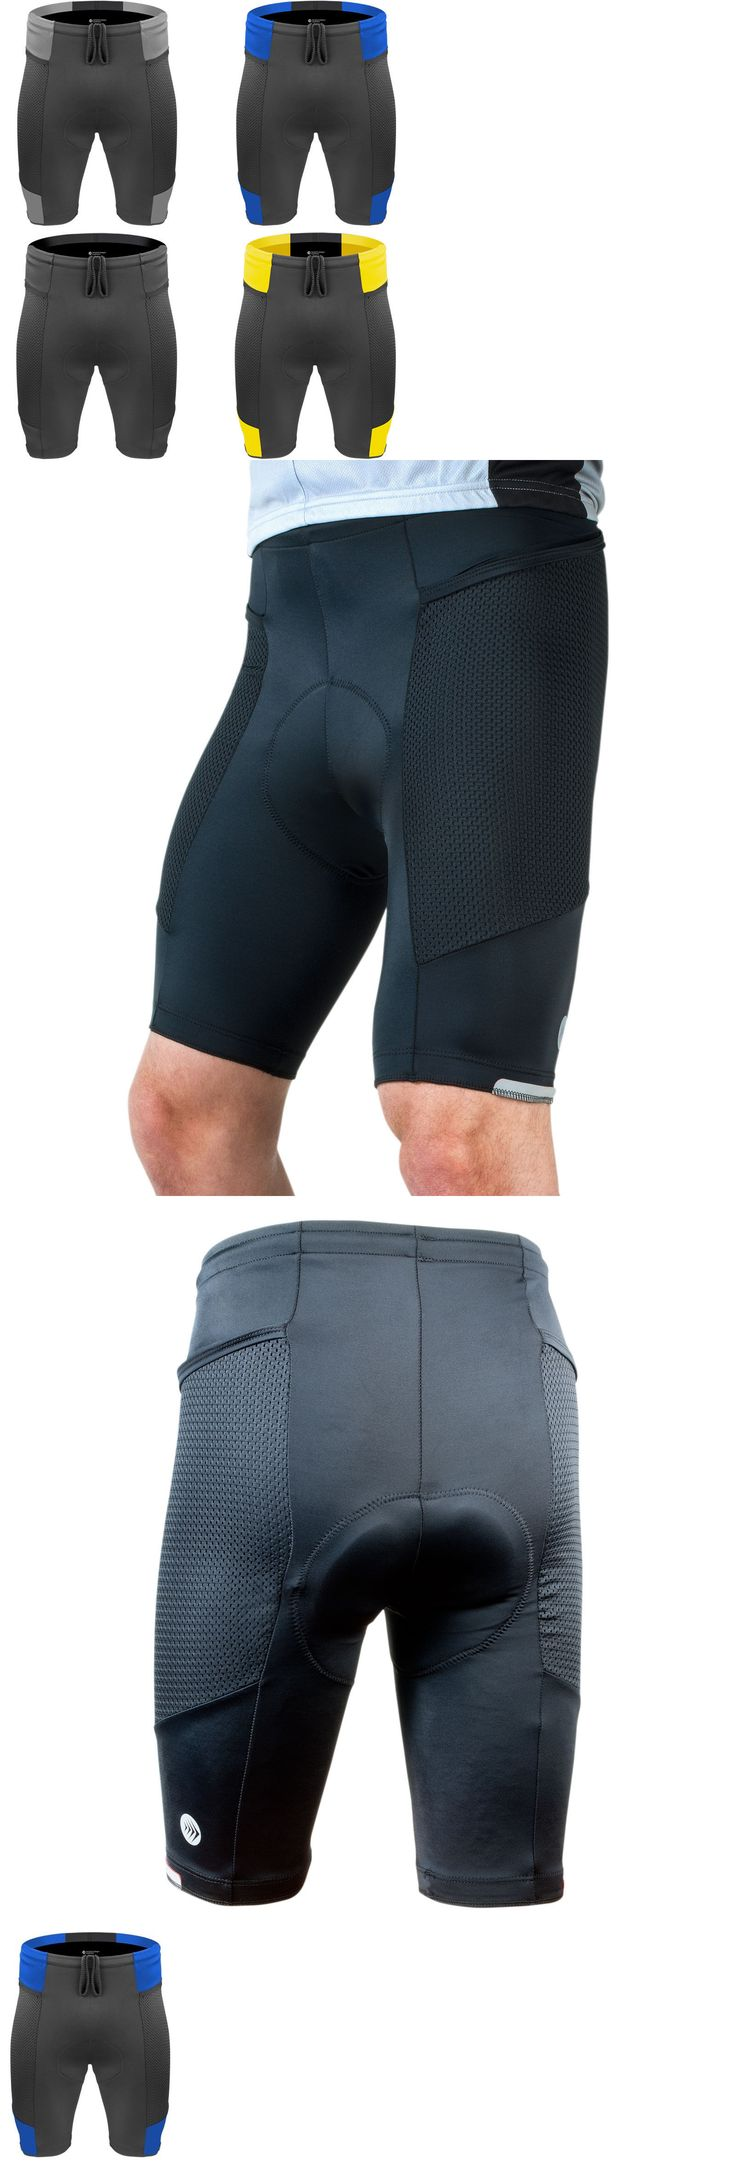 Shorts 177853: Mens Gel Padded Cycling Shorts Touring Bike Short Cyling Gear Usa Made -> BUY IT NOW ONLY: $79.99 on eBay!